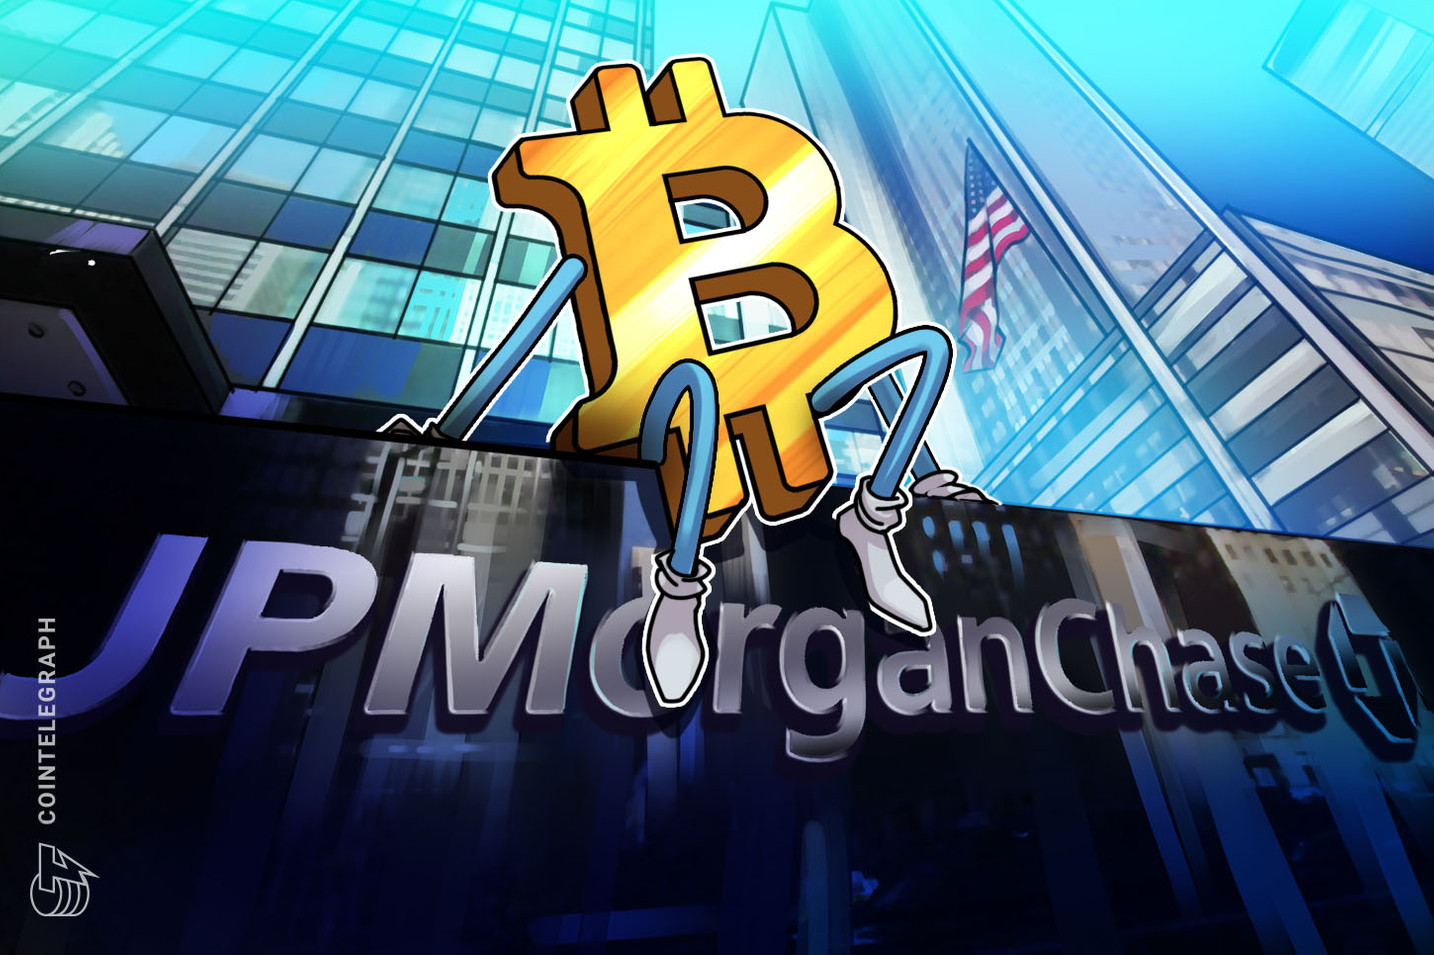 Bitcoin could hit $146K long-term by 'crowding out gold,' says JPMorgan